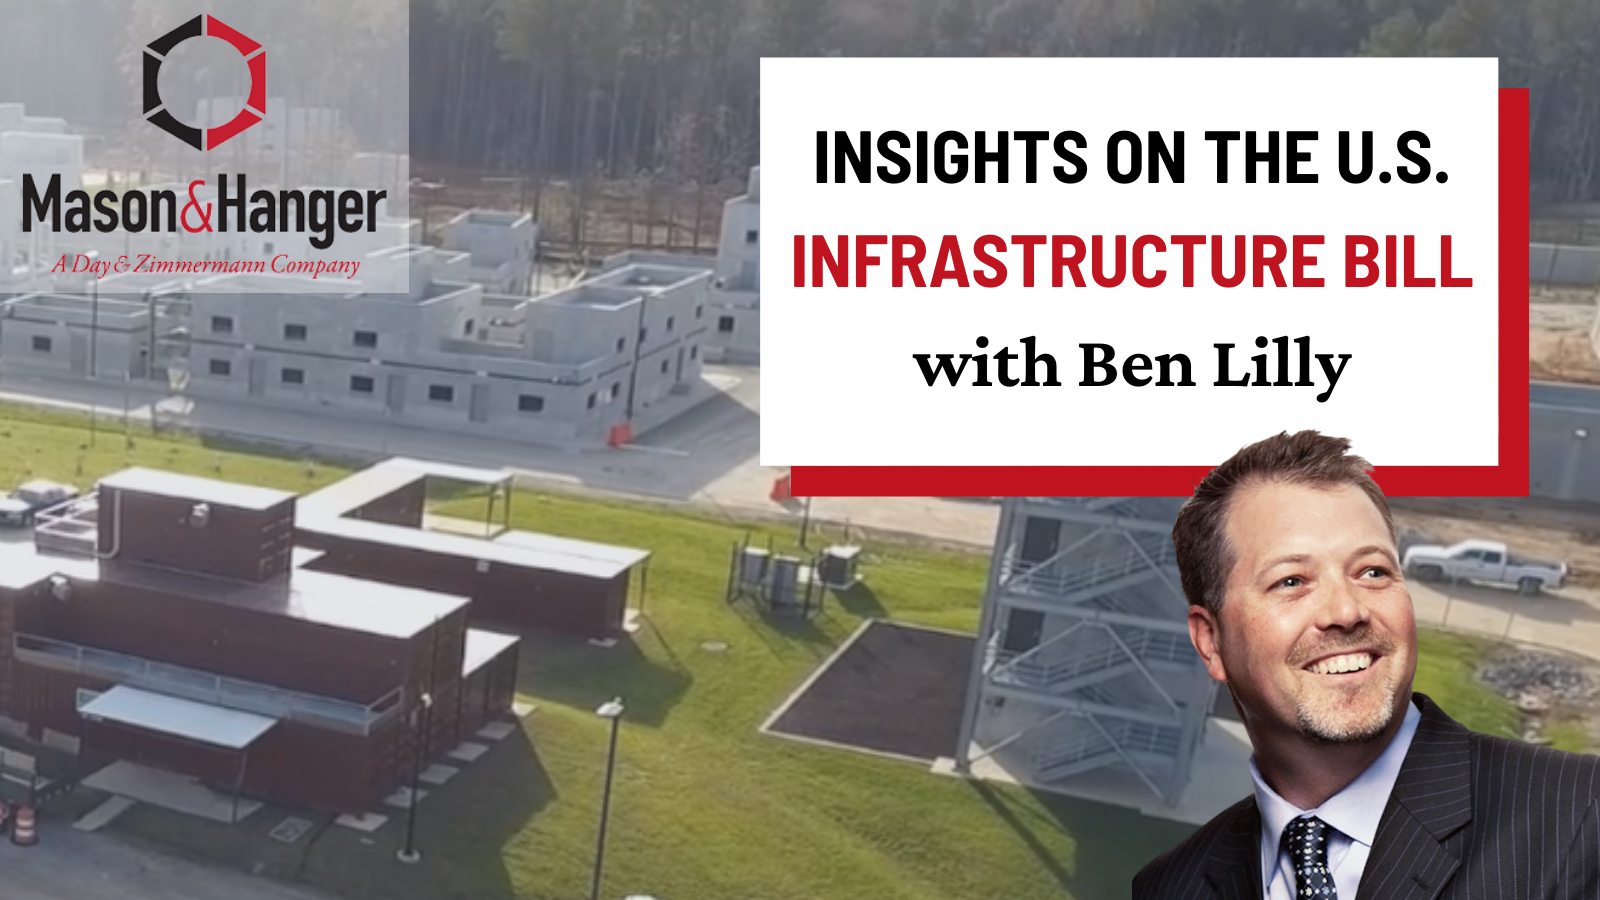 Insights on the U.S. Infrastructure Bill: Modernizing Our Country